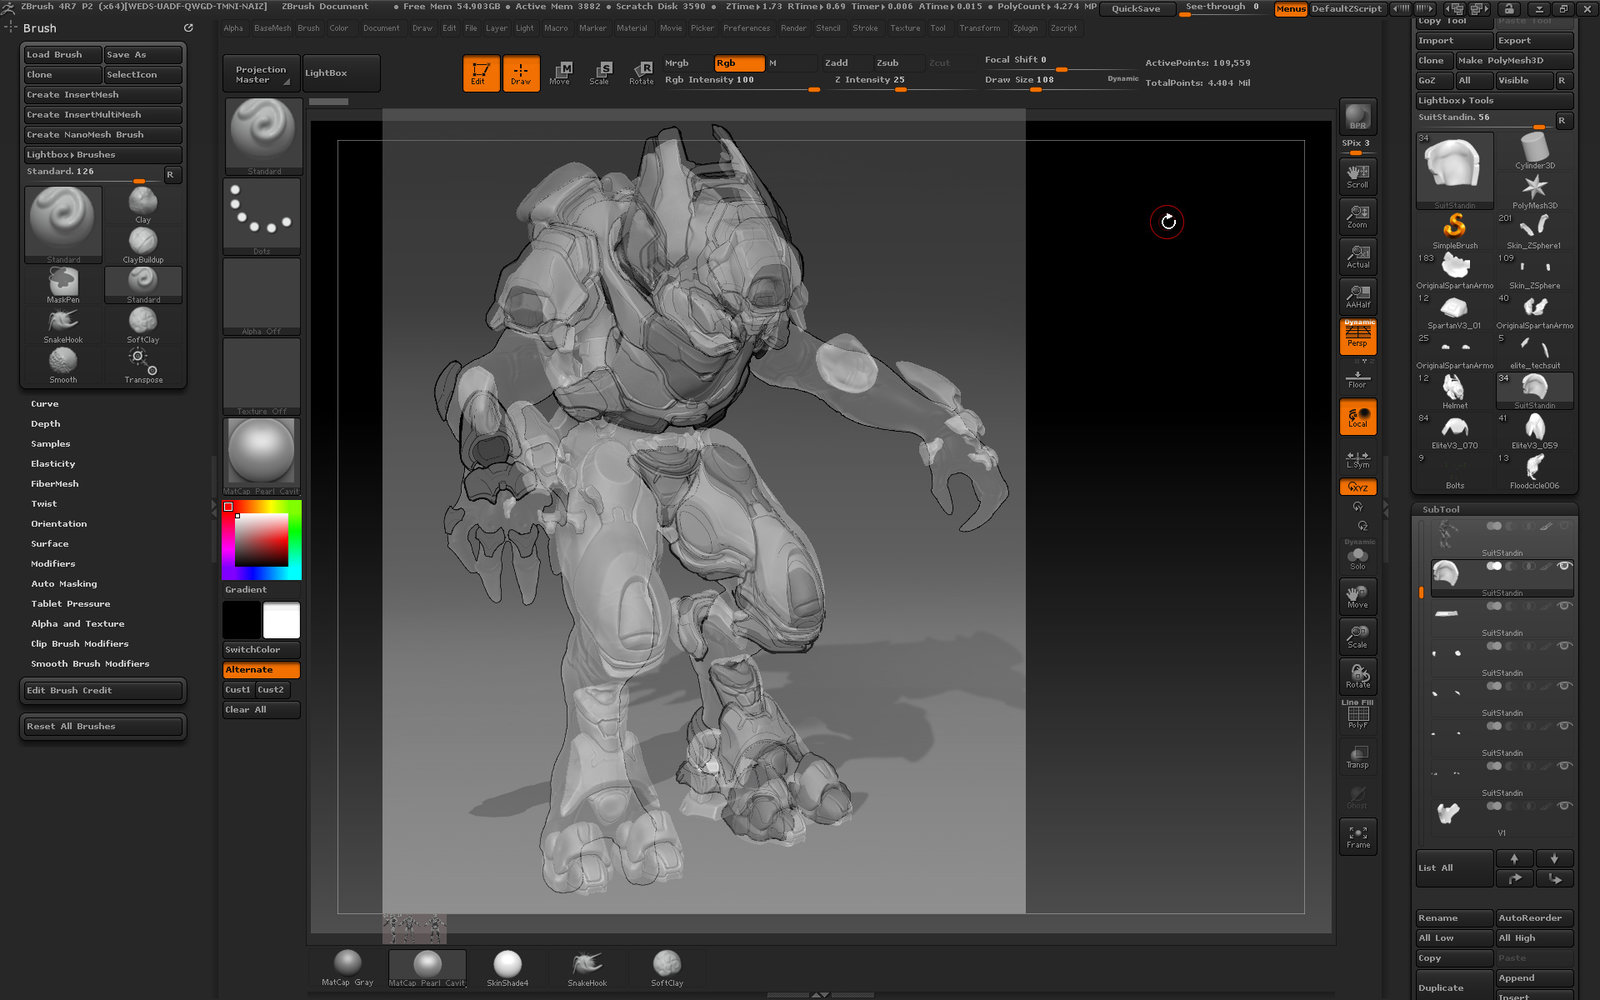 Making sure pieces line up, as well as projecting detail through for modeling